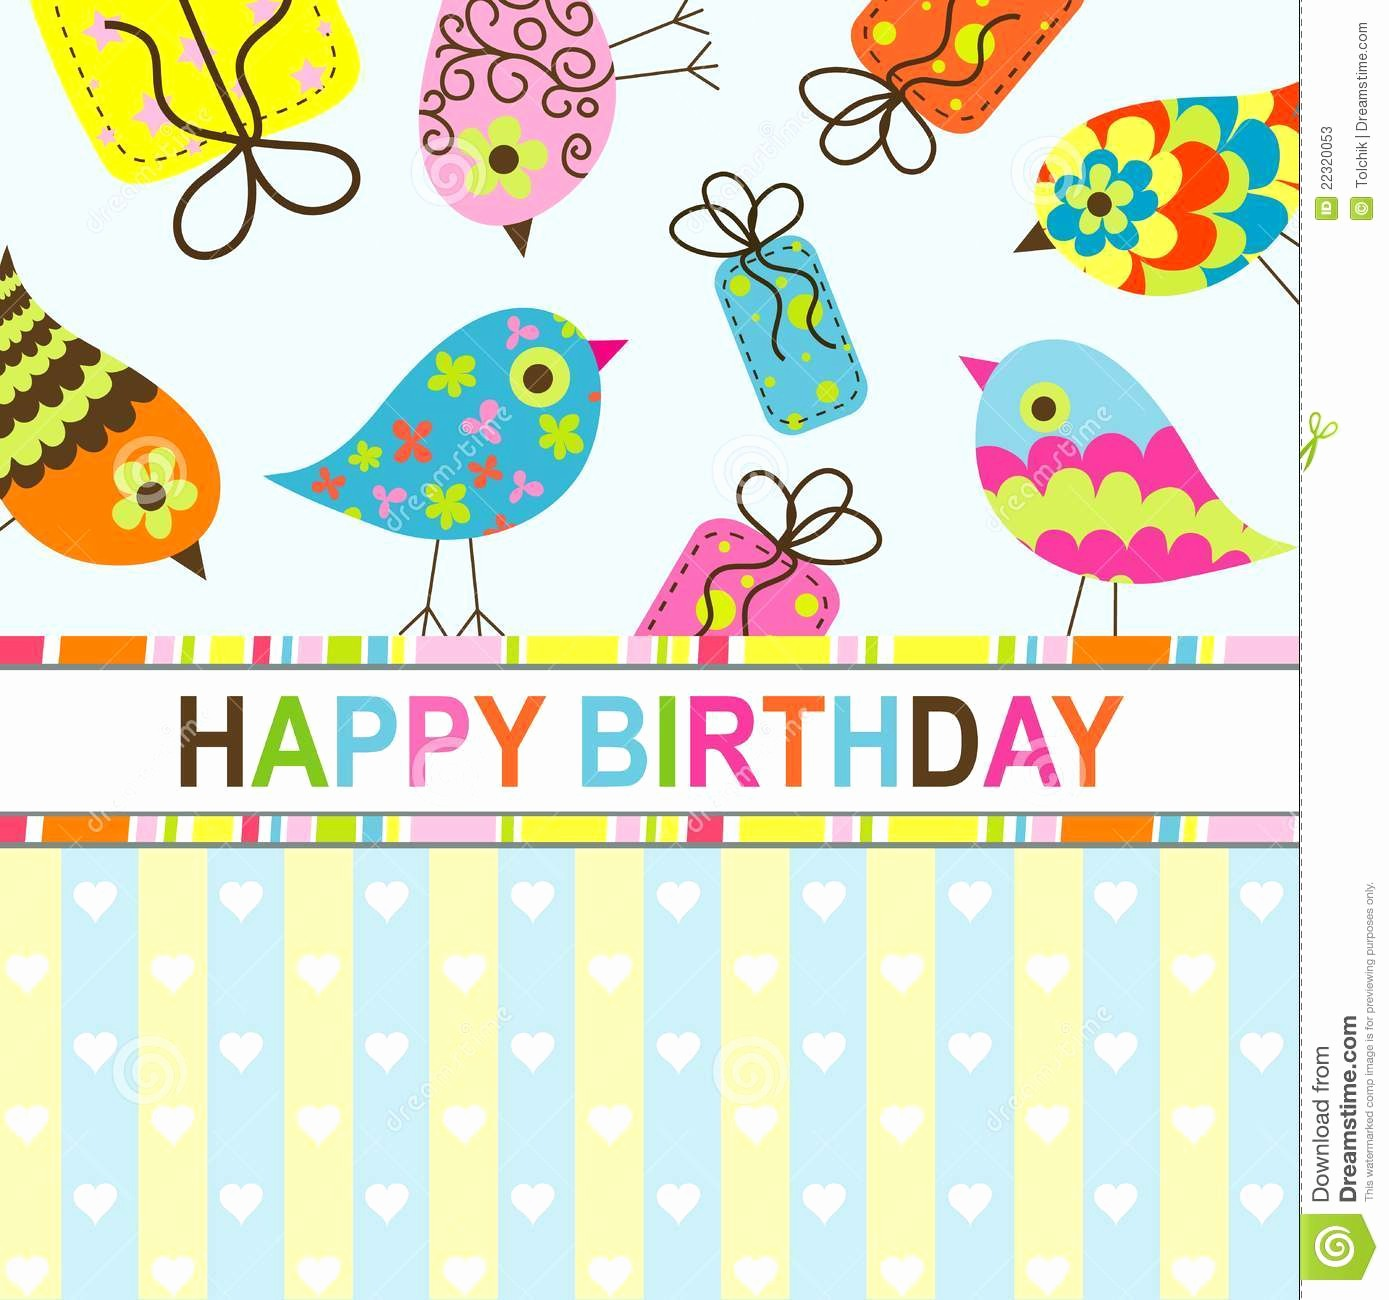 Template for A Birthday Card Lovely Template Birthday Greeting Card Stock S Image